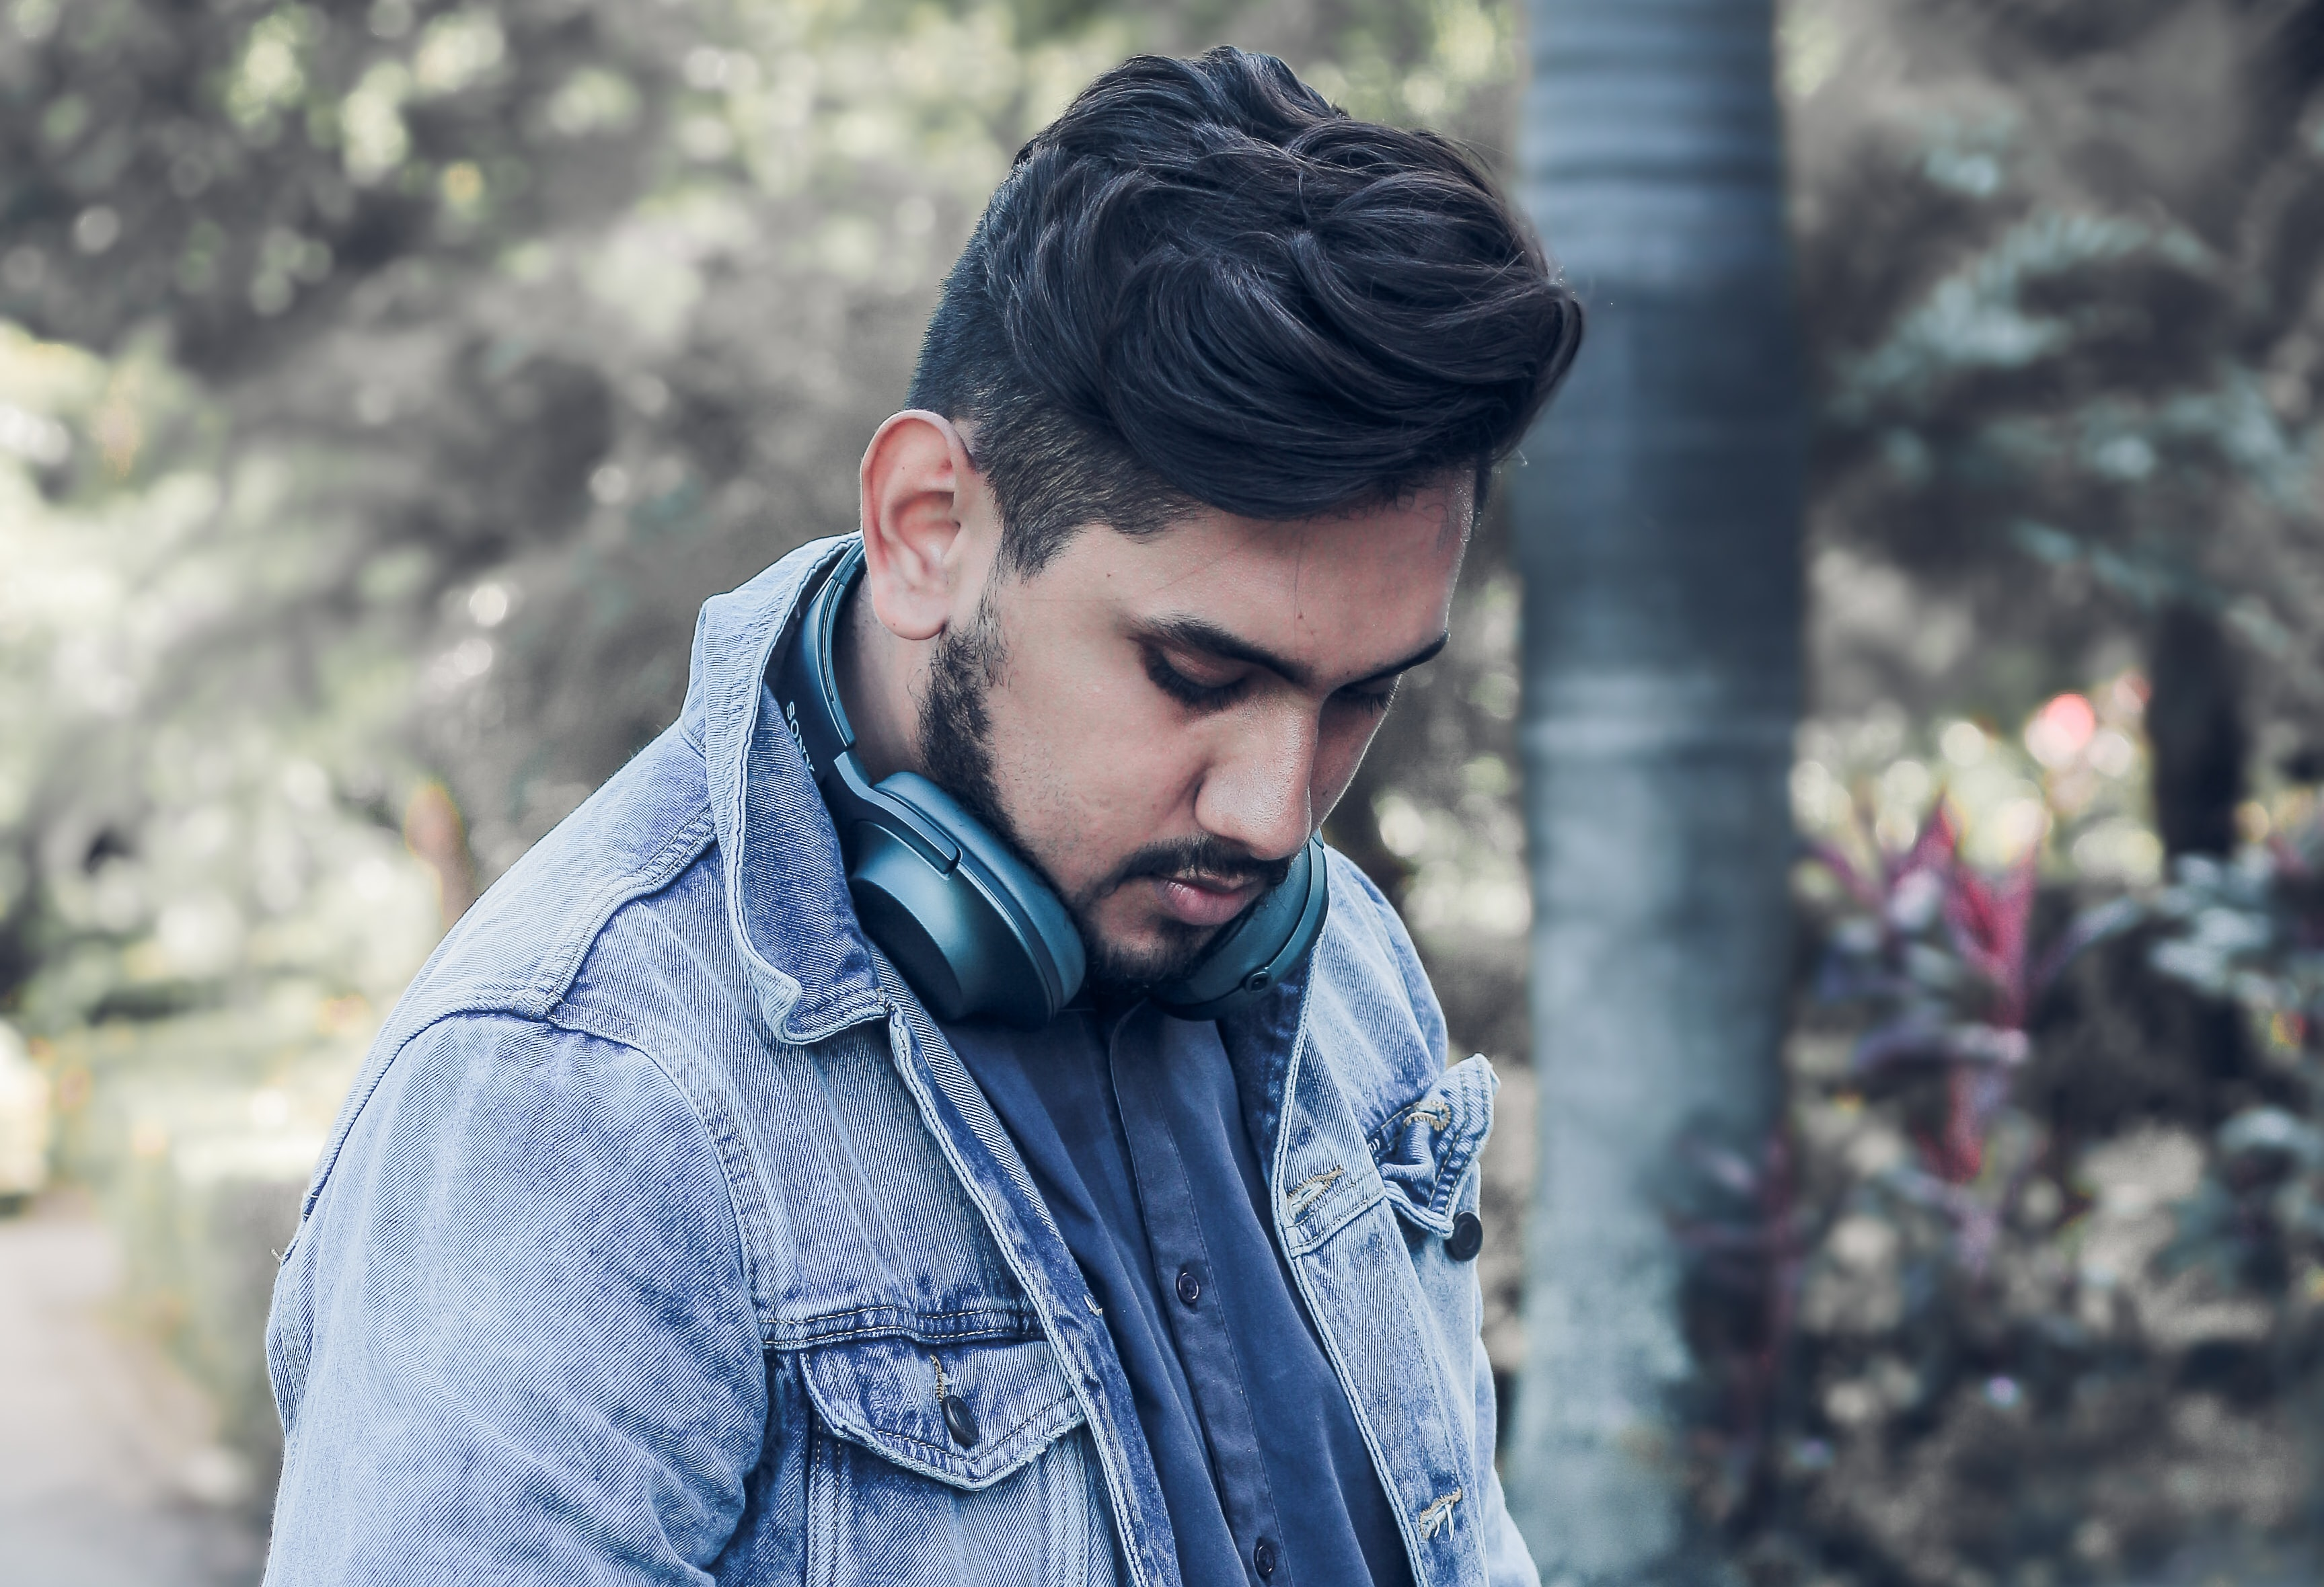 Man with tousled hairstyle wearing headphones around his neck